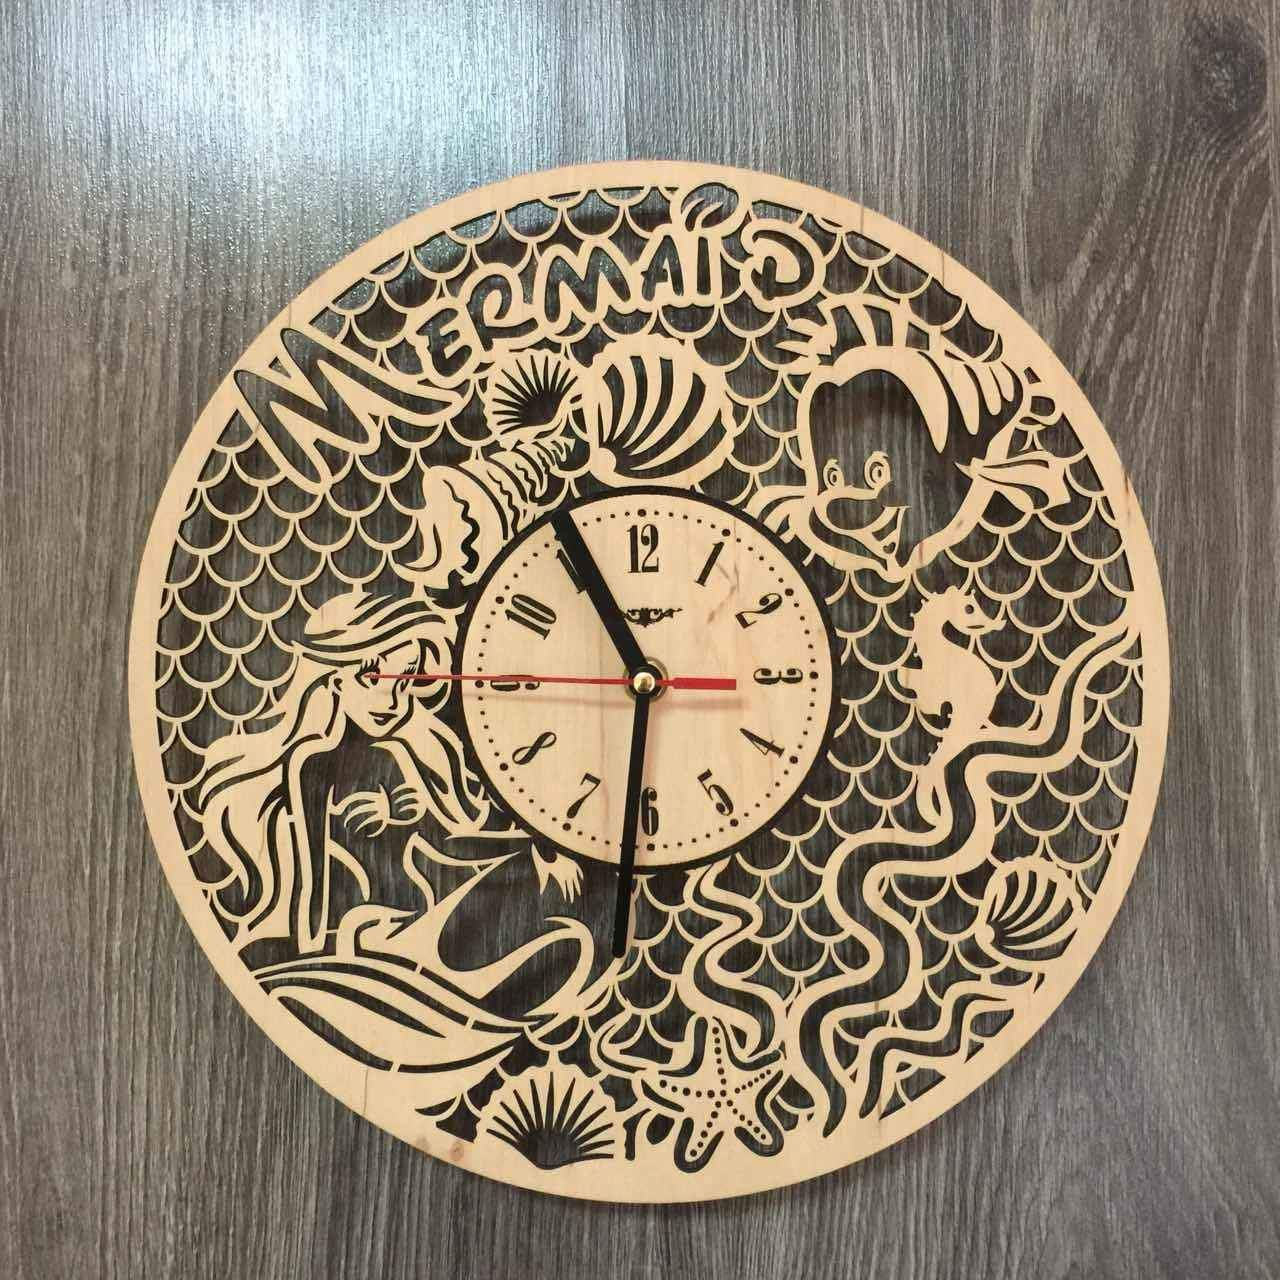 A Little Mermaid Wall Wood Clock 31 99 Size 12 In 30 Cm Really Cool Gift And Unique Home Decoration Can Be Personalized F Clock Wall Clock Wooden Clock